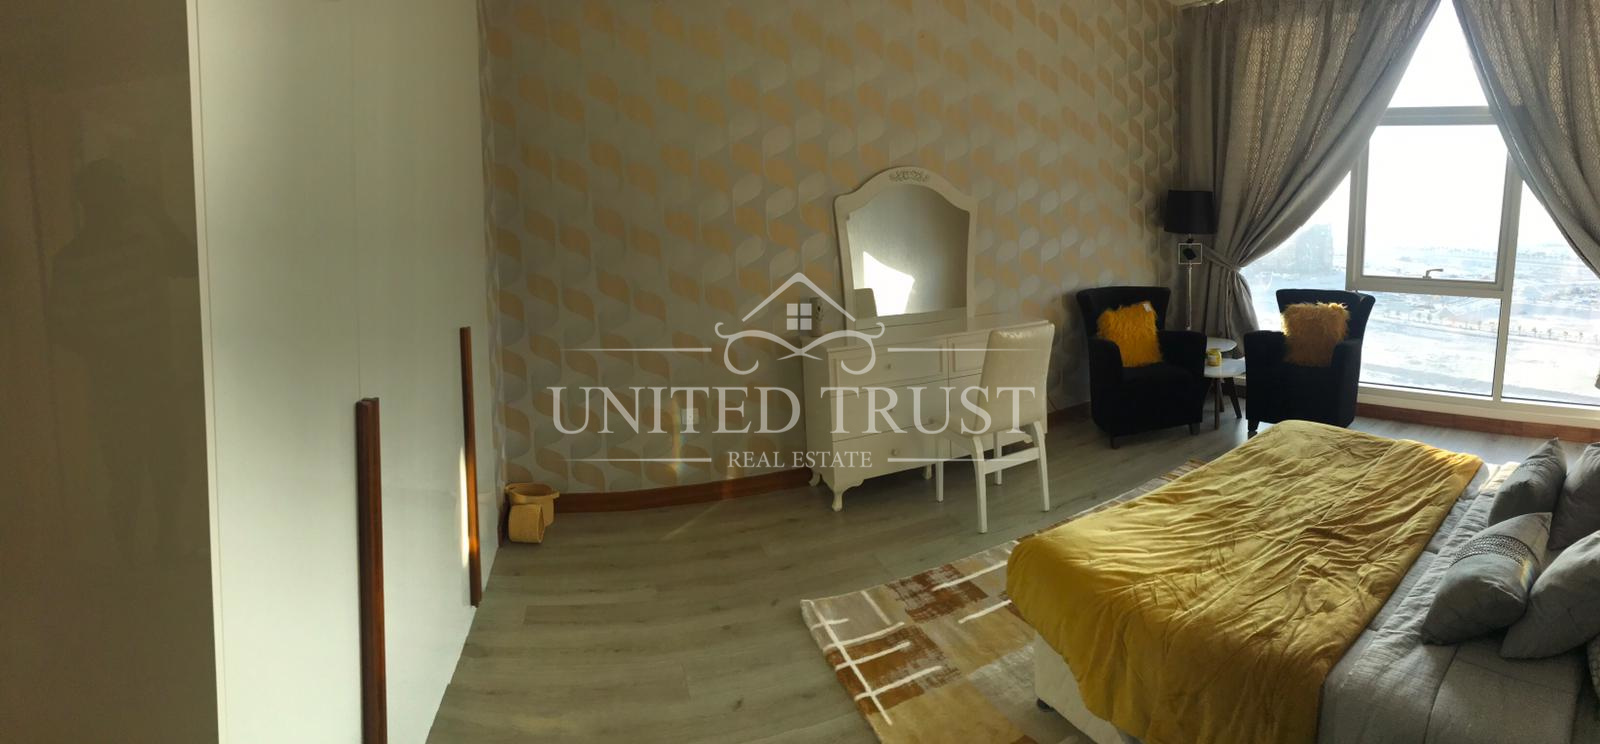 for Sale luxury Apartment in Dilmunia. Ref: DIL-MN-002